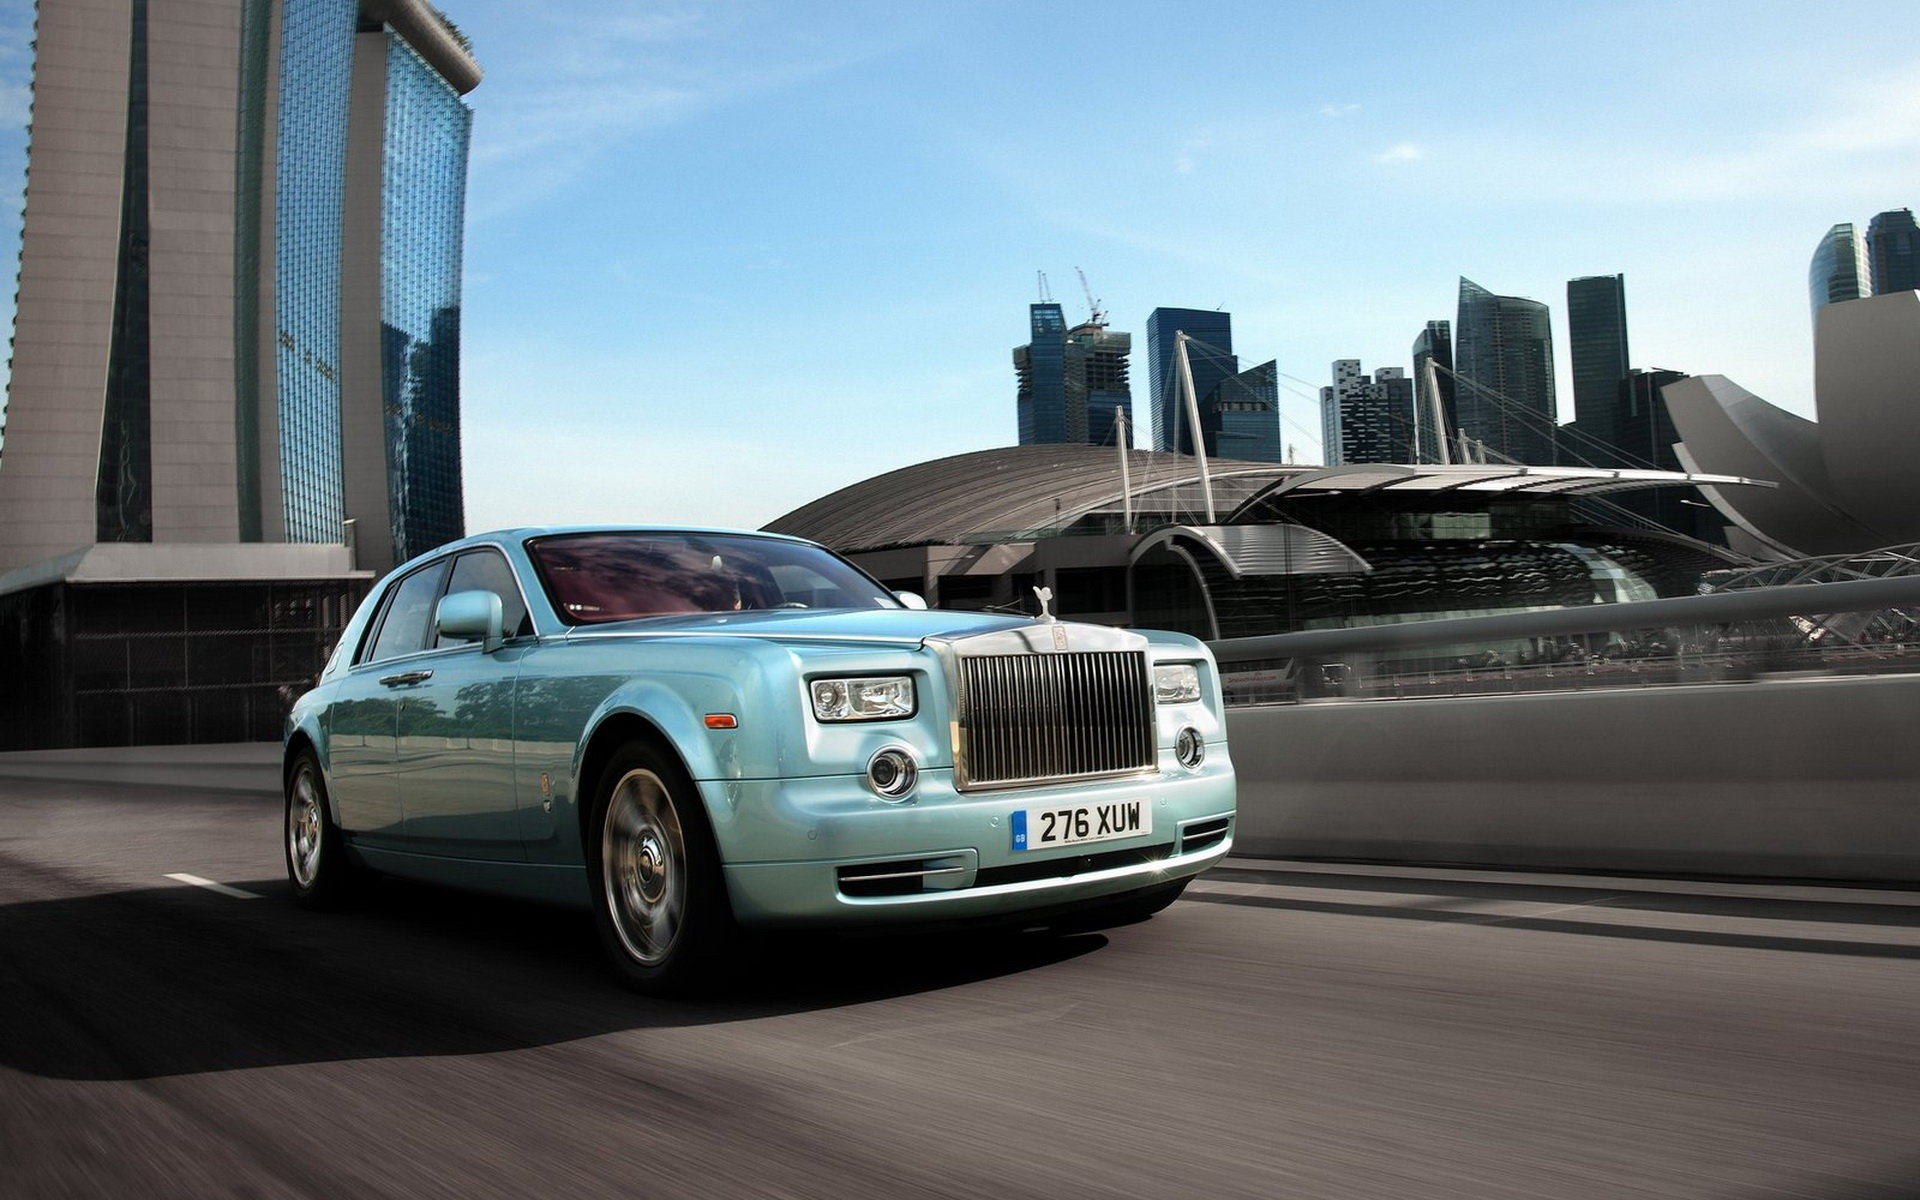 Awesome Rolls Royce free background ID:305976 for hd 1920x1200 desktop